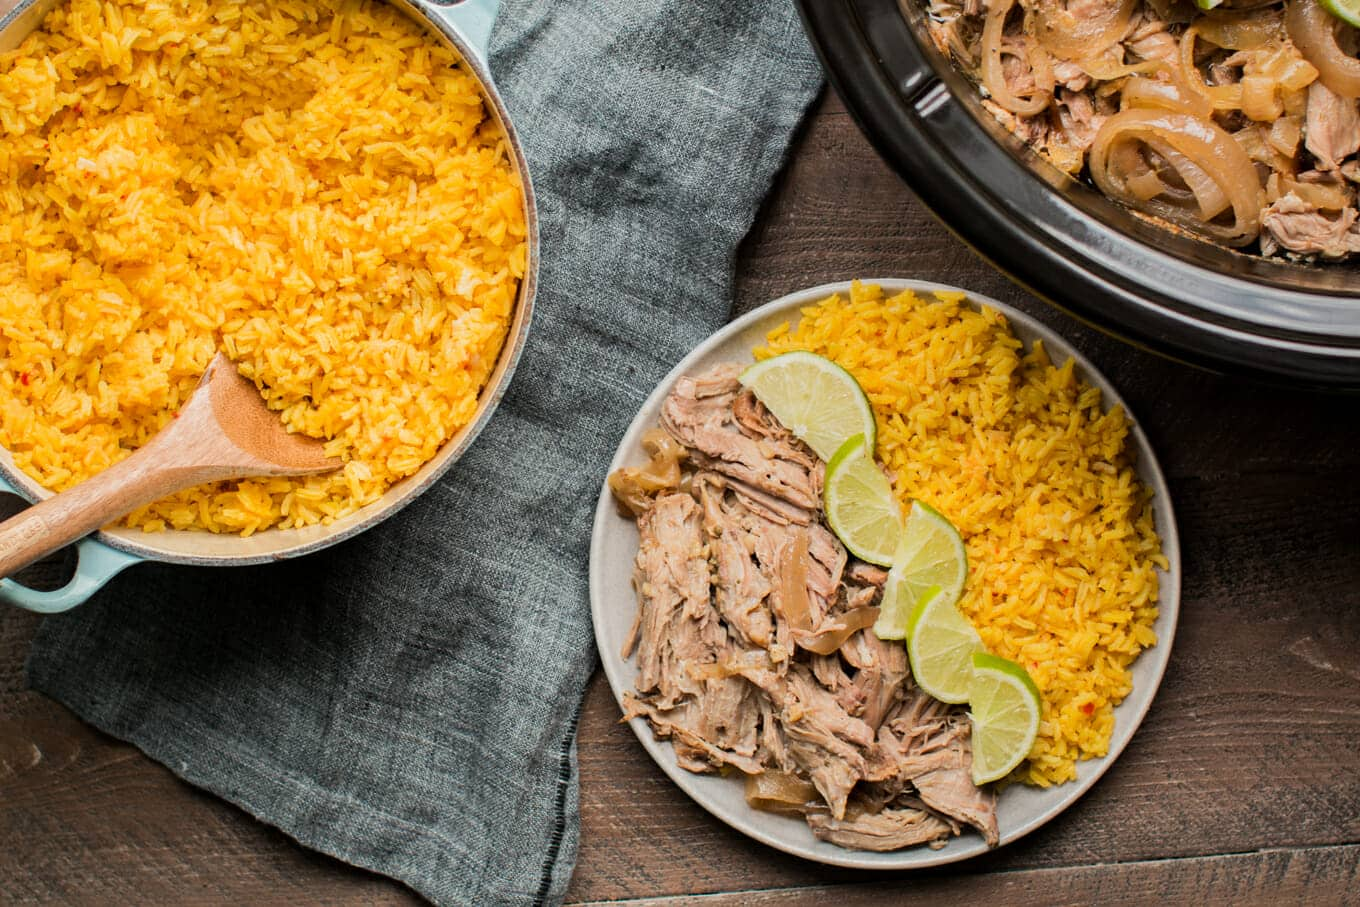 plate of cuban beef, limes and yellow rice.